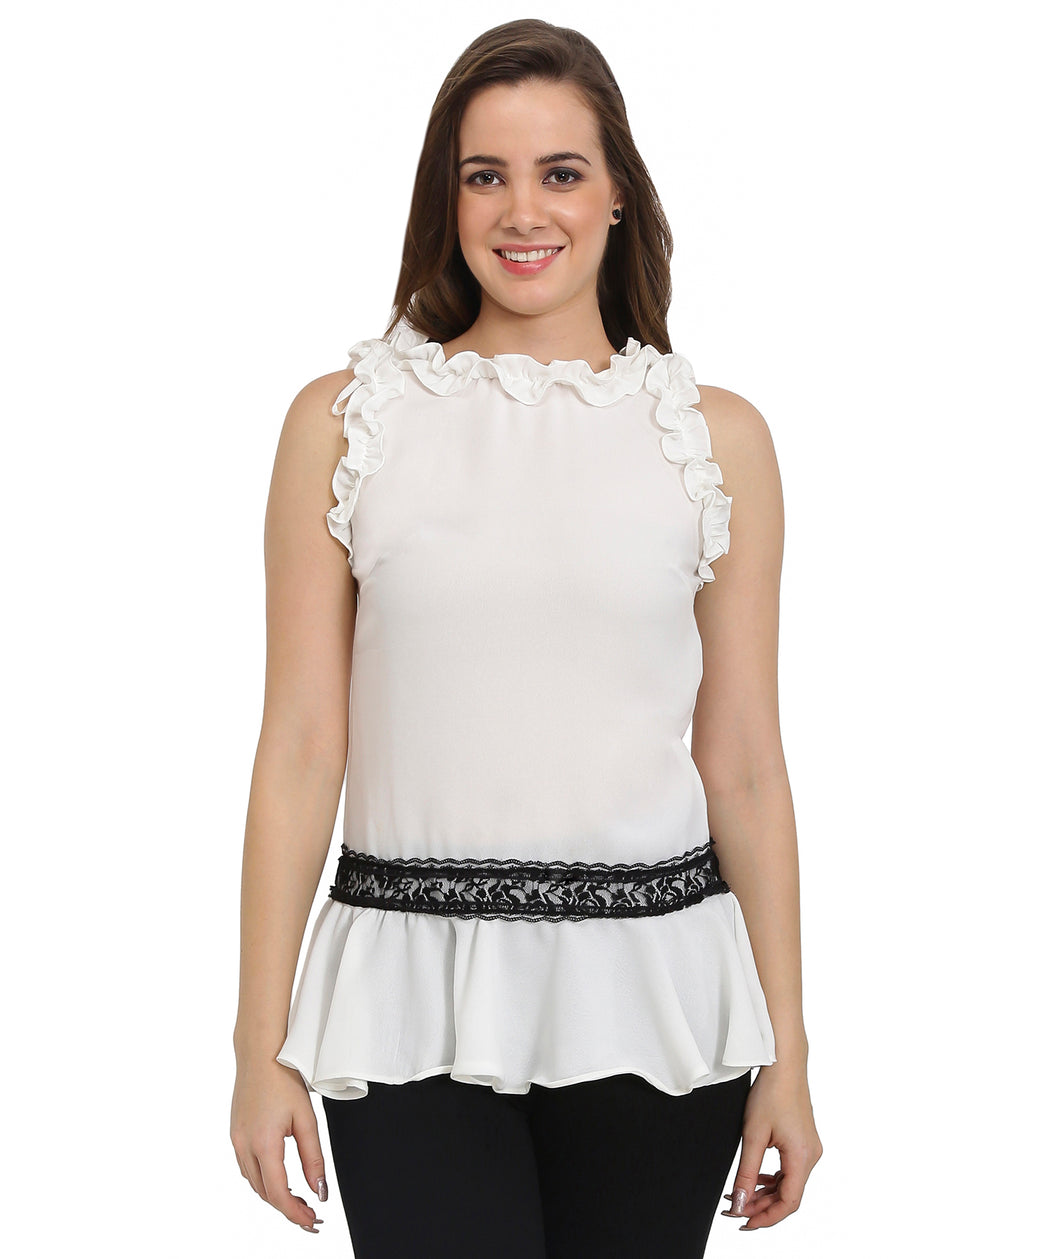 White Sleeveless Lace Frilled Top